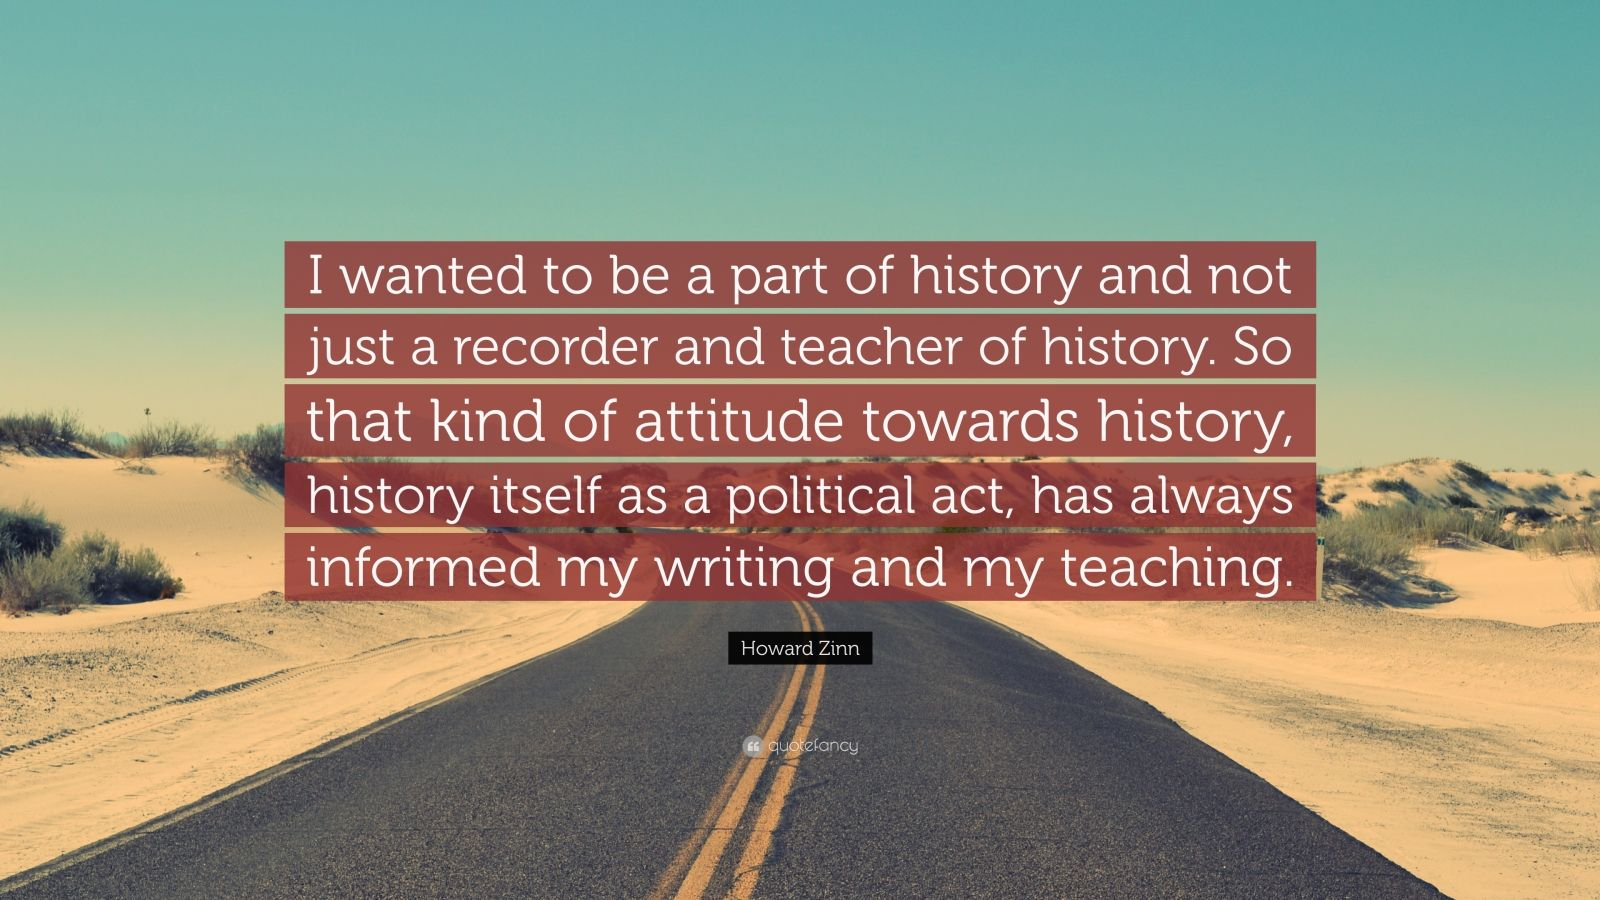 """Howard Zinn Quote: """"I wanted to be a part of history and not just a recorder and teacher of history. So that kind of attitude towards history, history itself as a political act, has always informed my writing and my teaching."""""""